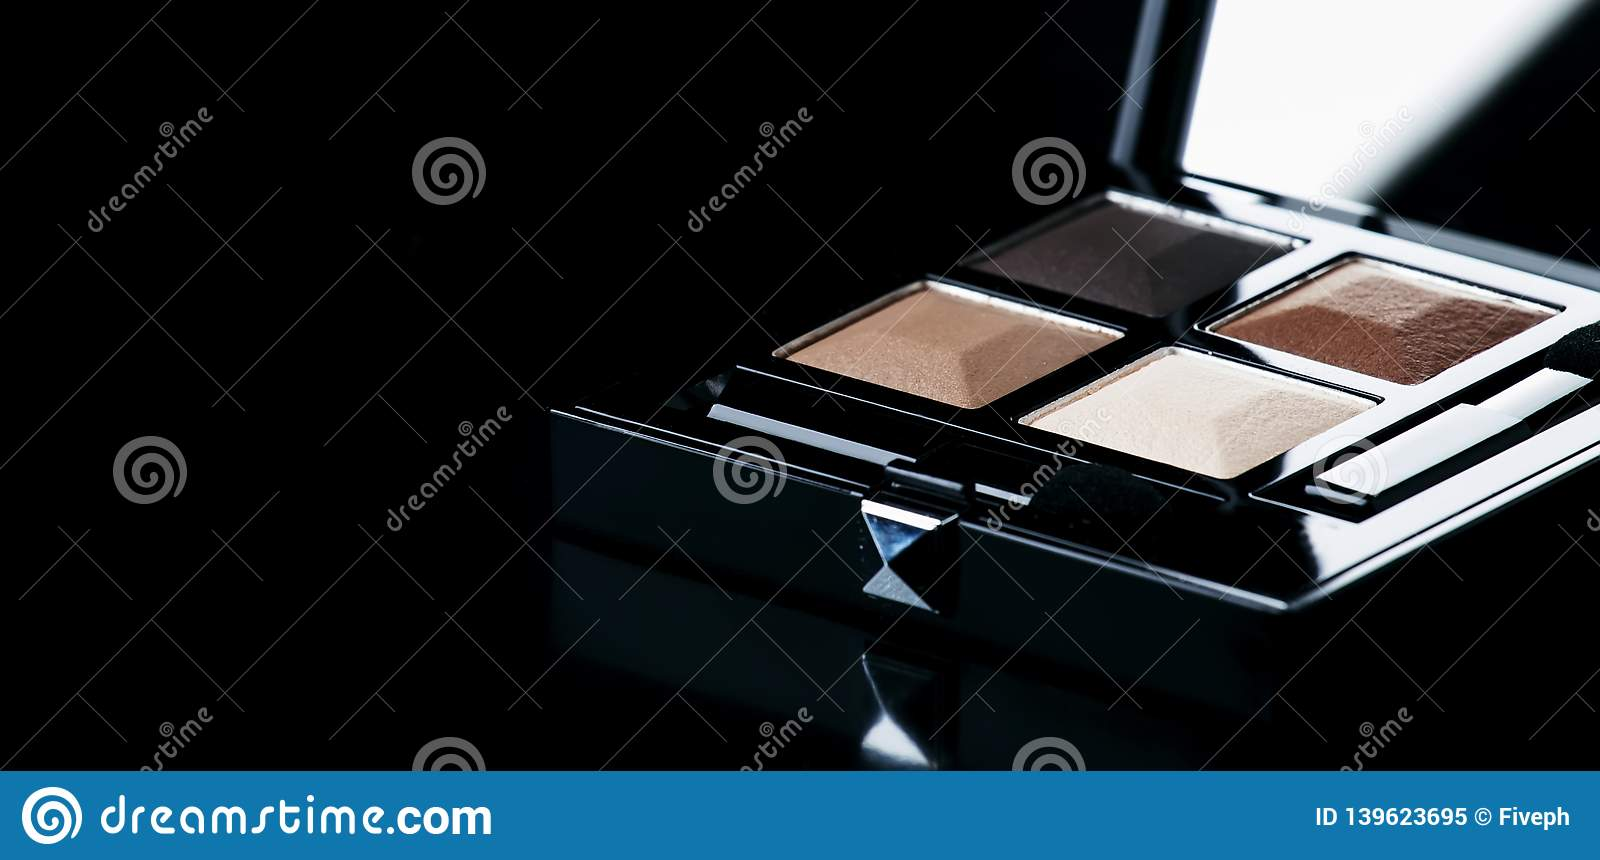 Brown sand eyeshadow in black box on glossy black background, place for text, selective focus